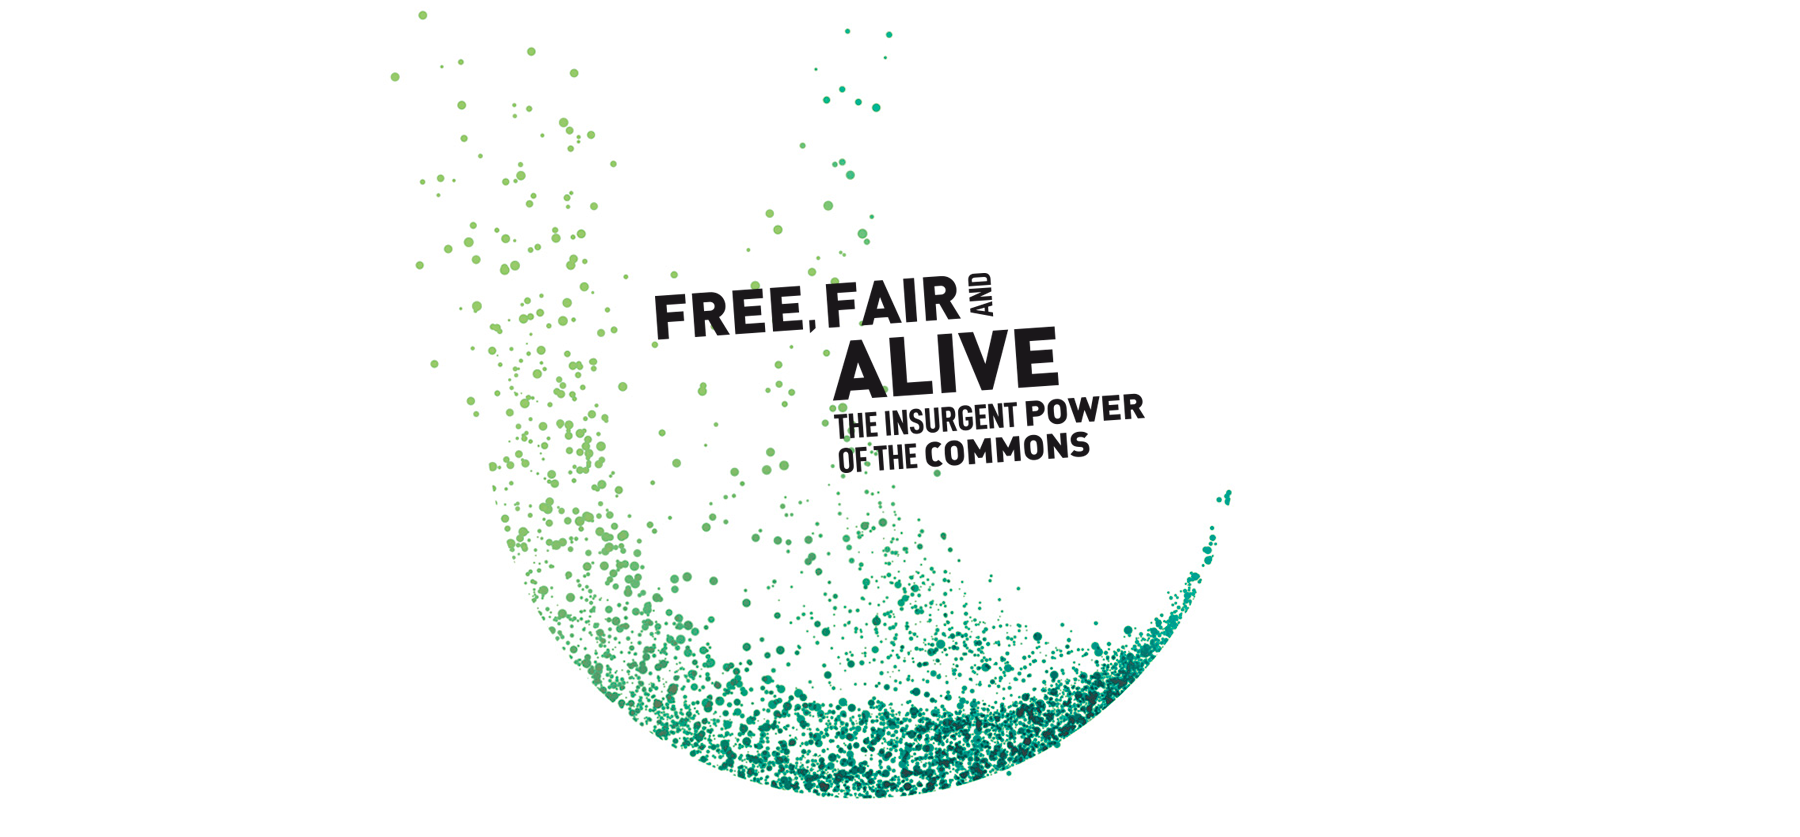 Praise for 'Free, Fair and Alive'